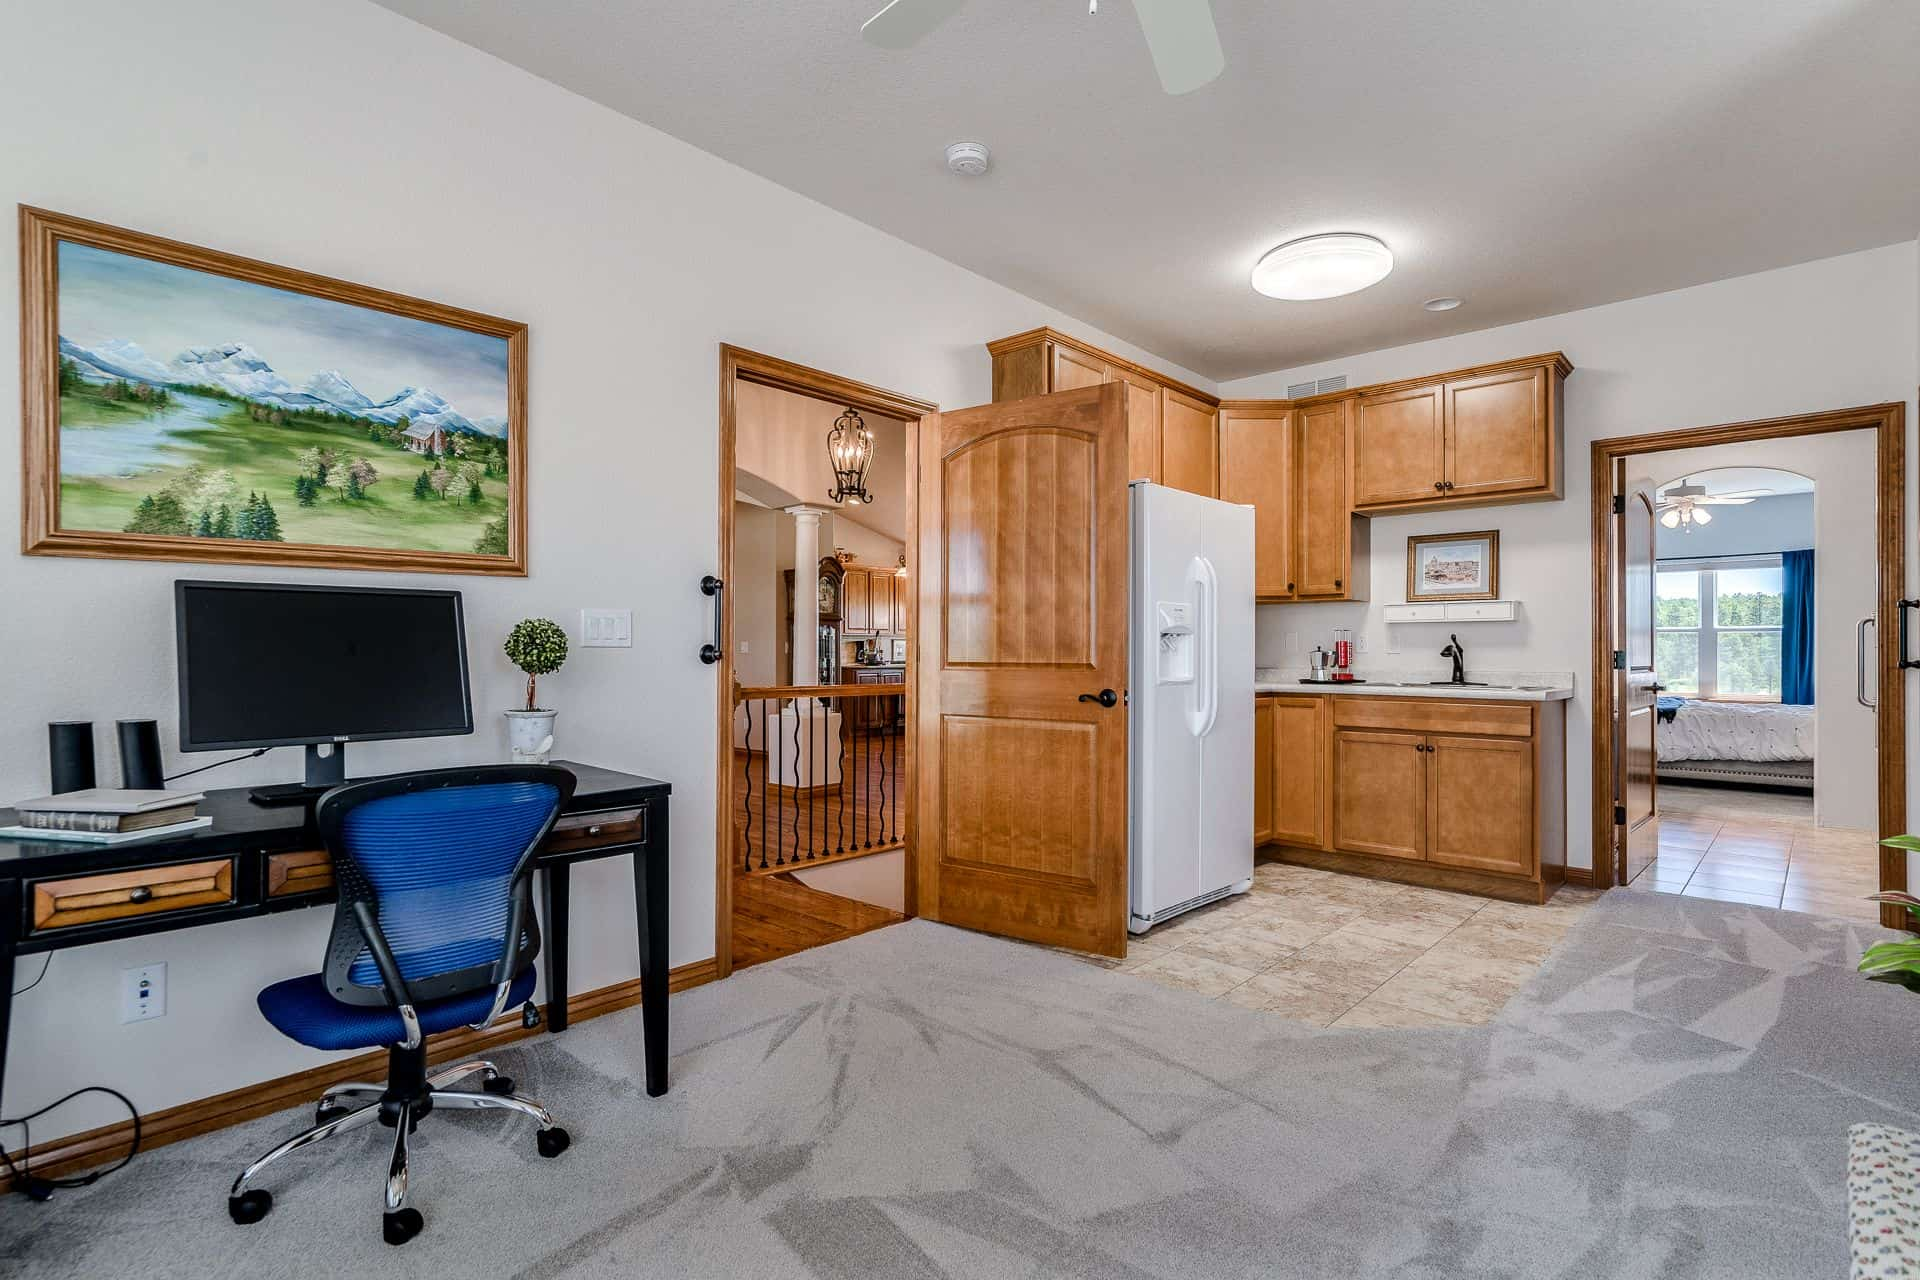 Living Room/Office/BR3 with Wet Bar and Refrigerator